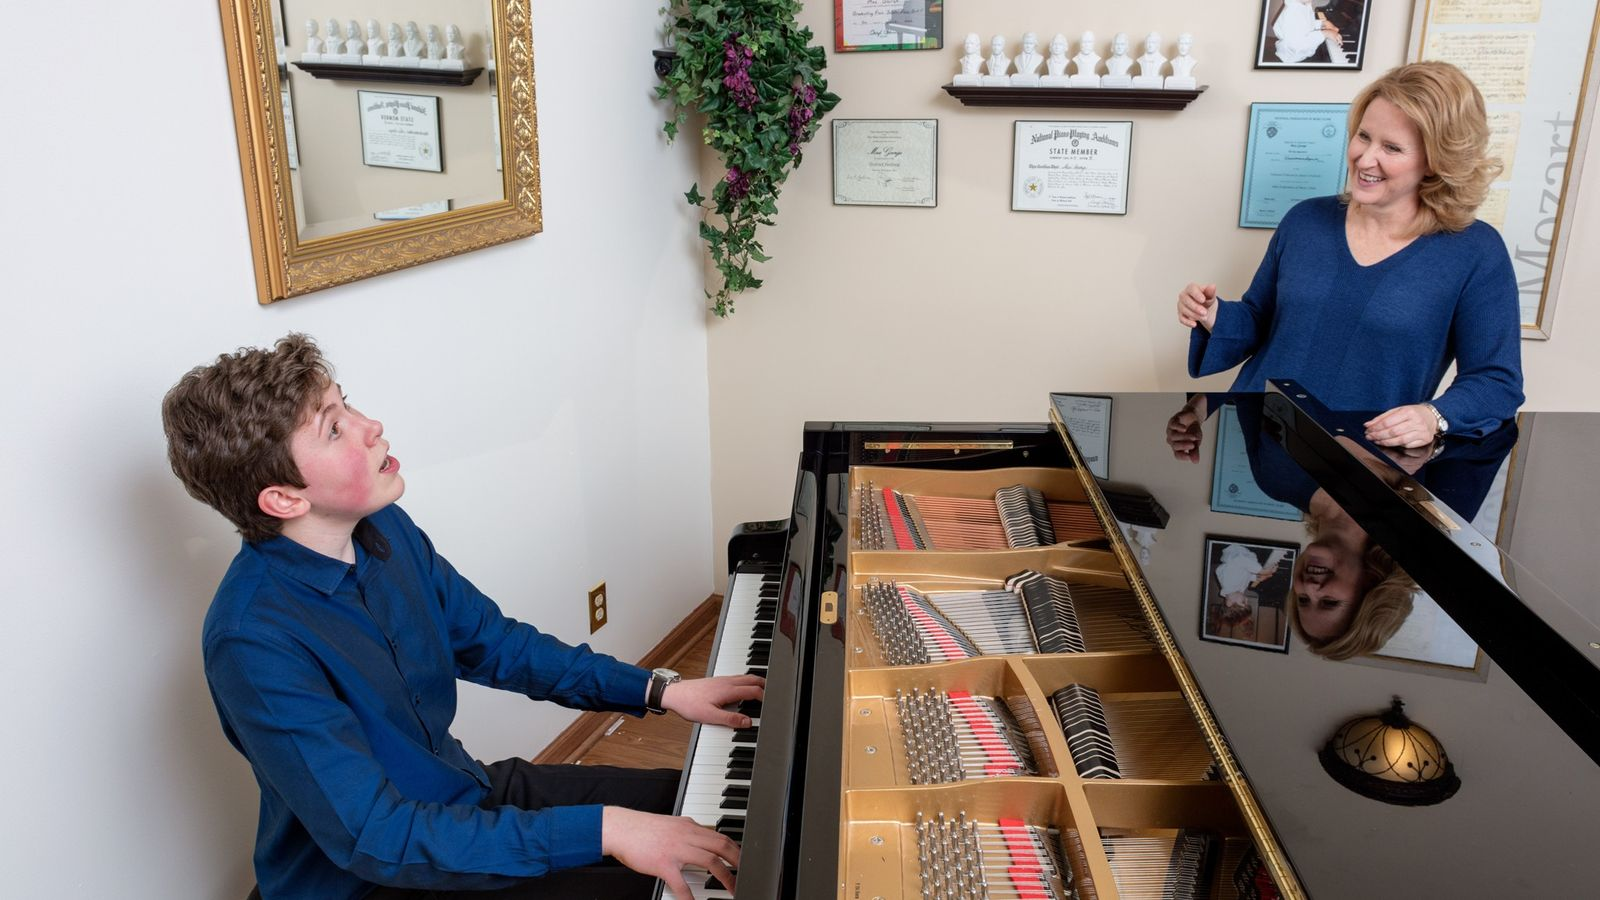 Piano prodigy Gavin George, 14, enjoys playing for his mother, Mary, in their home in Granville, ...